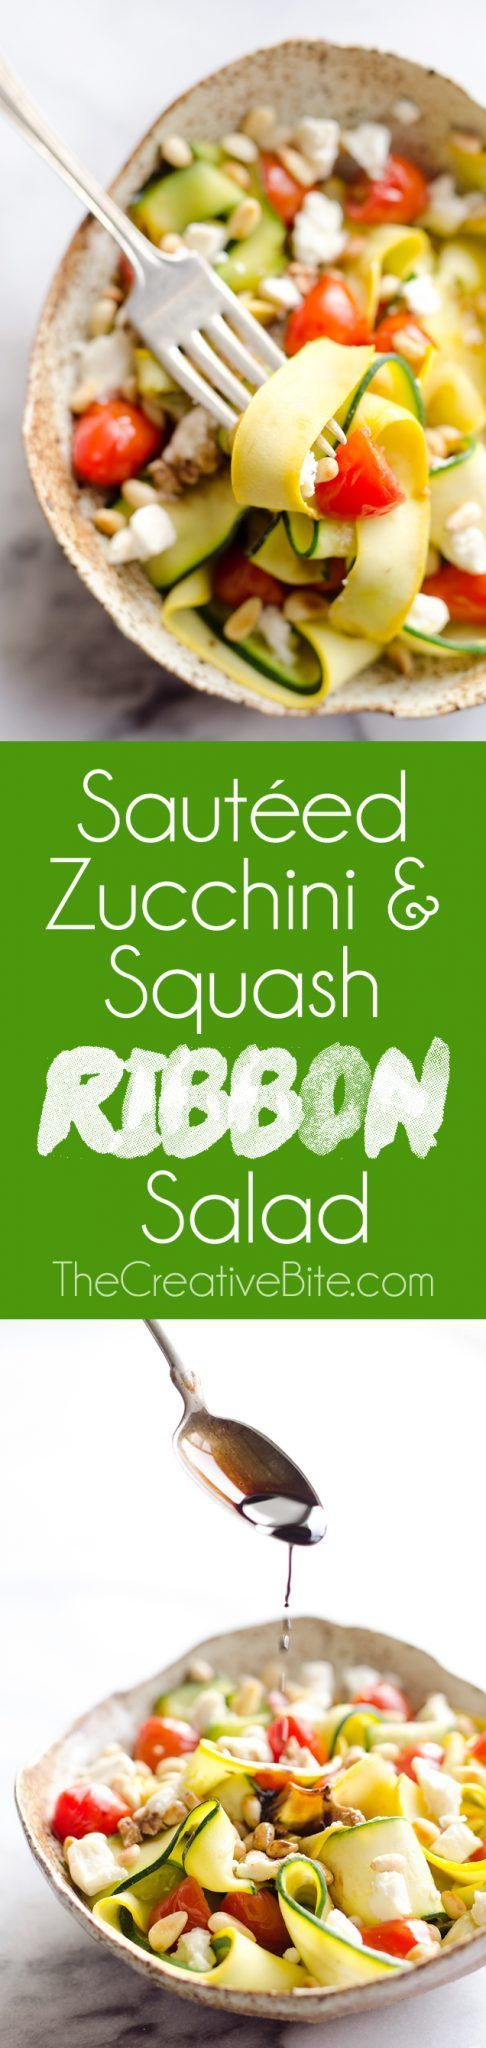 Ribboned Squash & Zucchini Salad is a fresh and healthy vegetarian salad with light veggies, toasted pine nuts, creamy goat cheese and balsamic glaze. Pair it with some grilled shrimp or chicken for an amazing and flavorful dinner you won't forget! #Vegetable #Salad